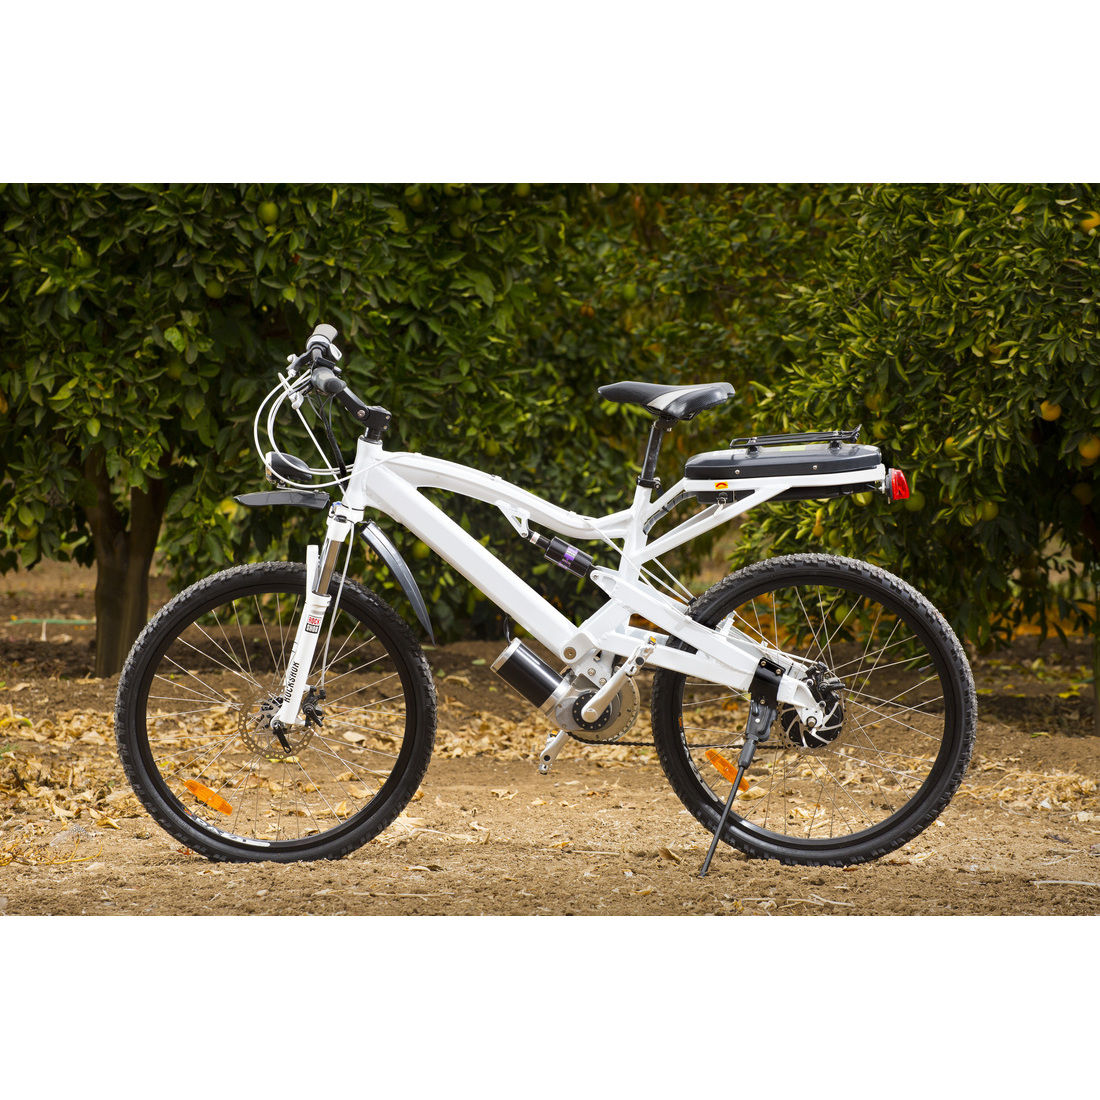 Discovery Electric Bikes, & Mobility Scooters of the San Francisco Bay Area.